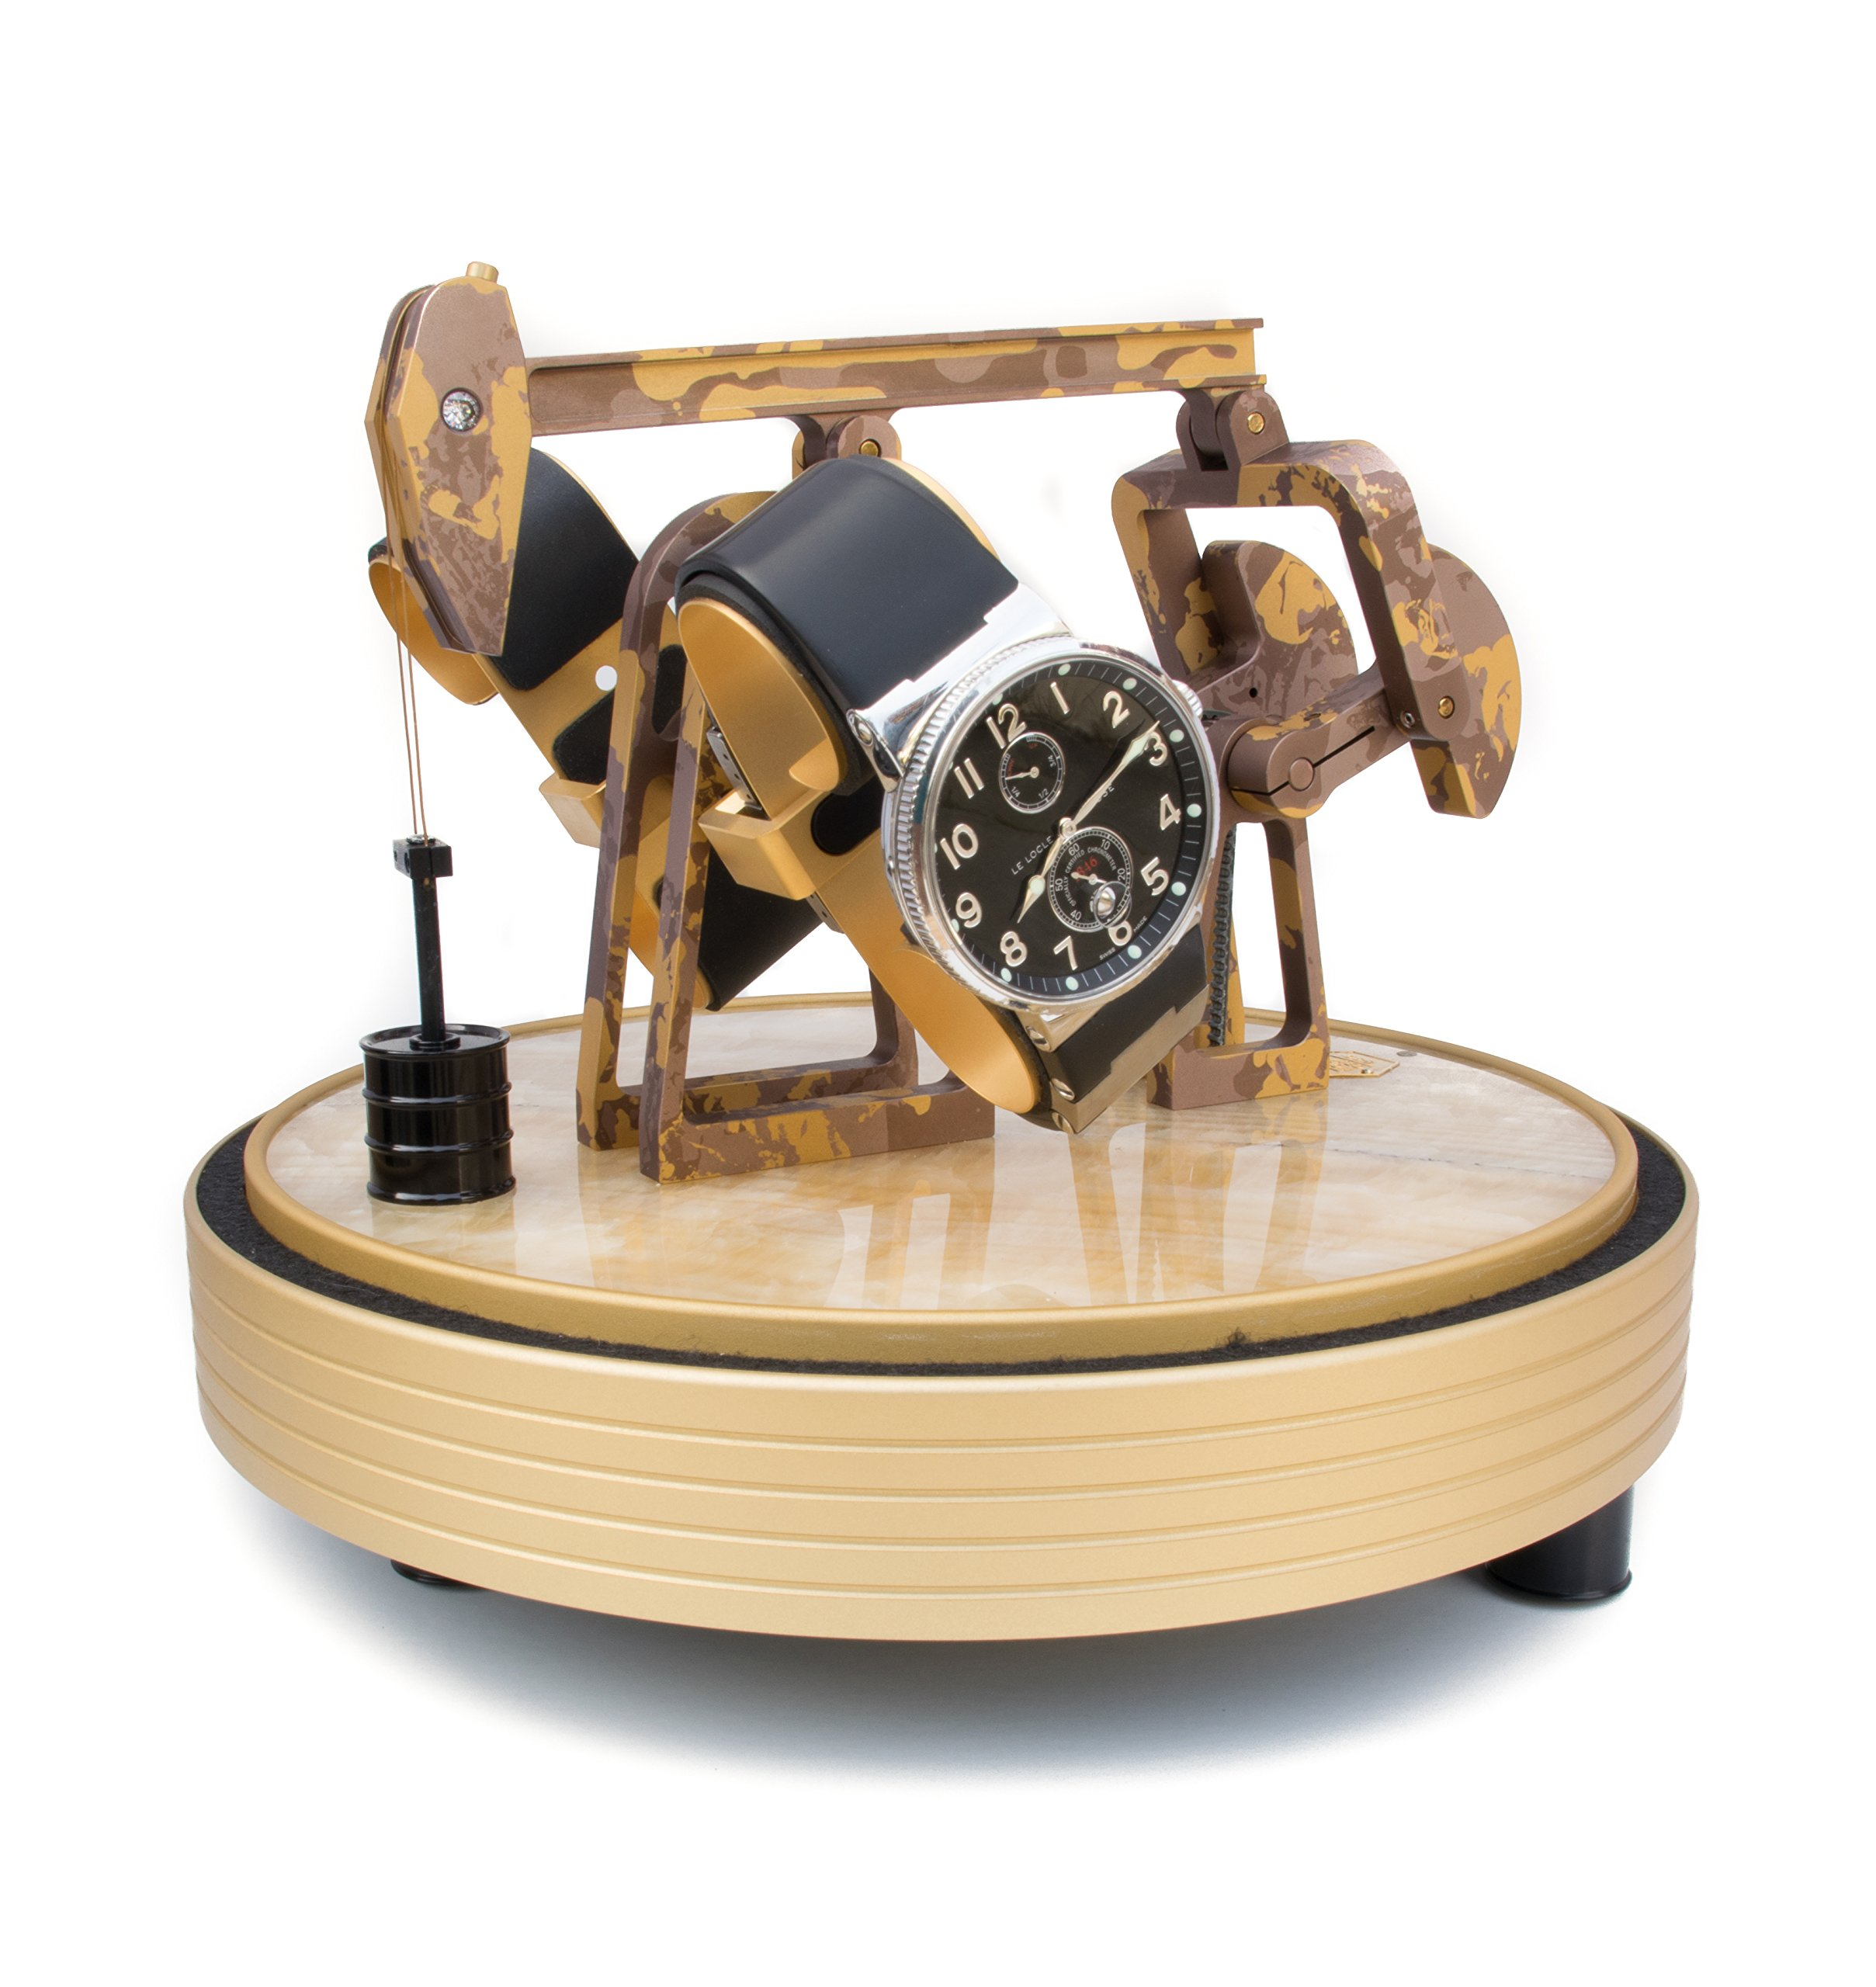 Kunstwinder Desert Mirage Watch Winder by Kunstwinder (Image #4)